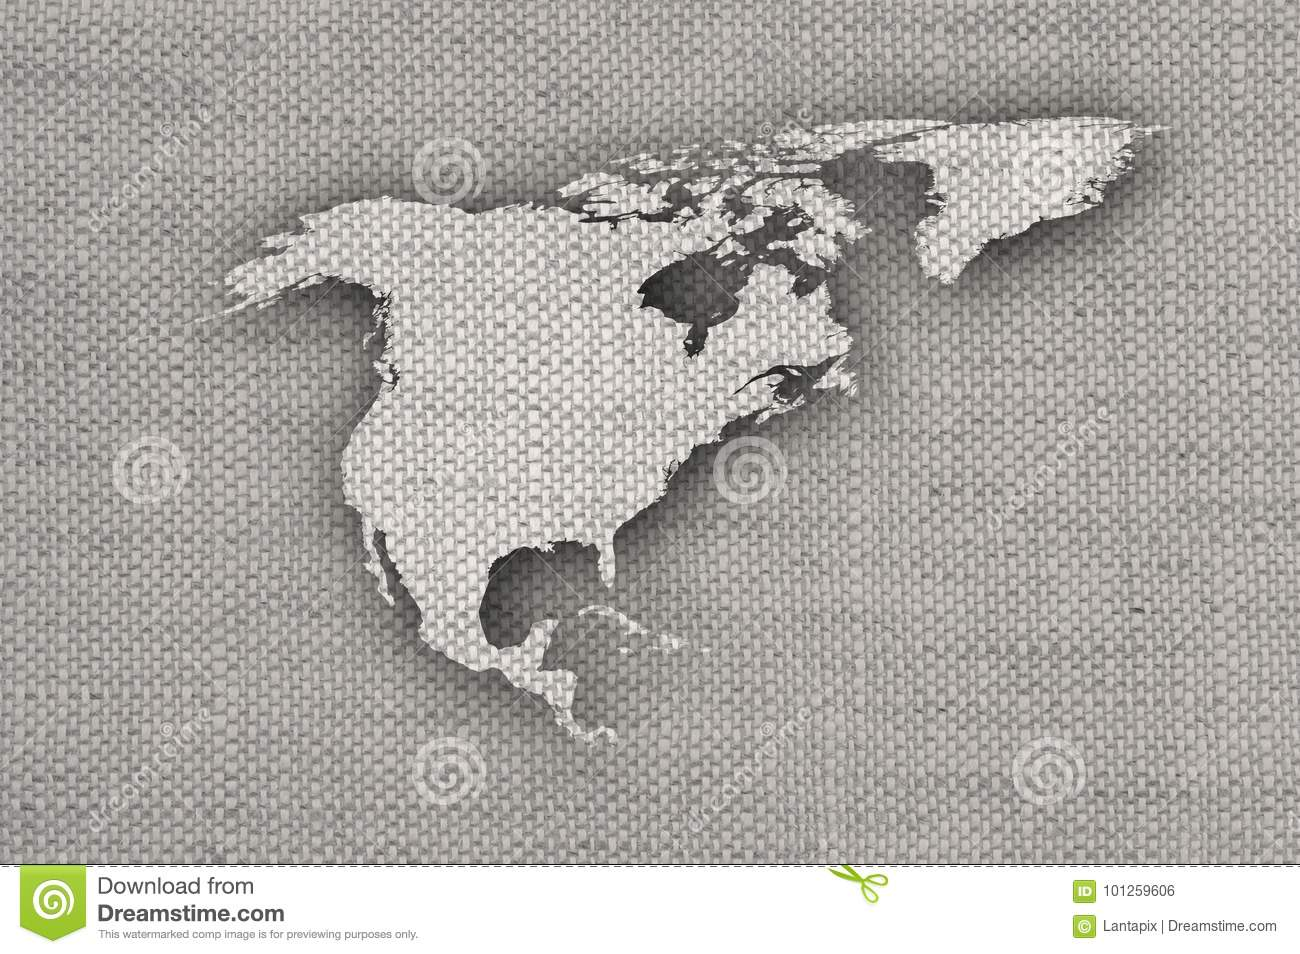 Map of North America on old linen